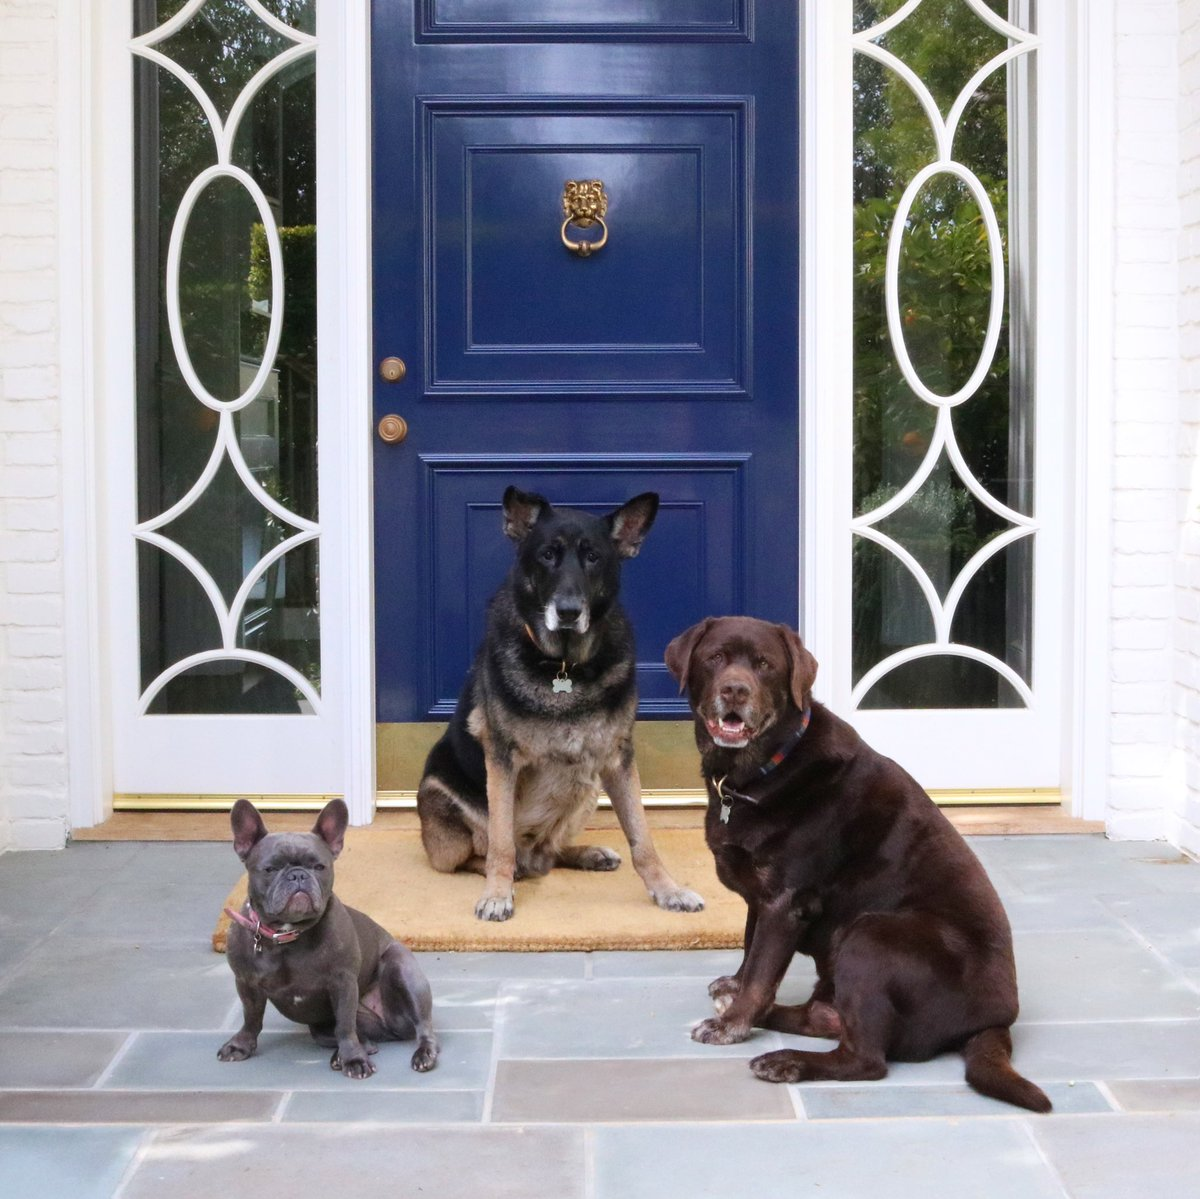 So glad I get to come home to these faces every single day! ????❤️ #LoveYourPetDay #pepper #nash #hank https://t.co/ImFkpc0n6p